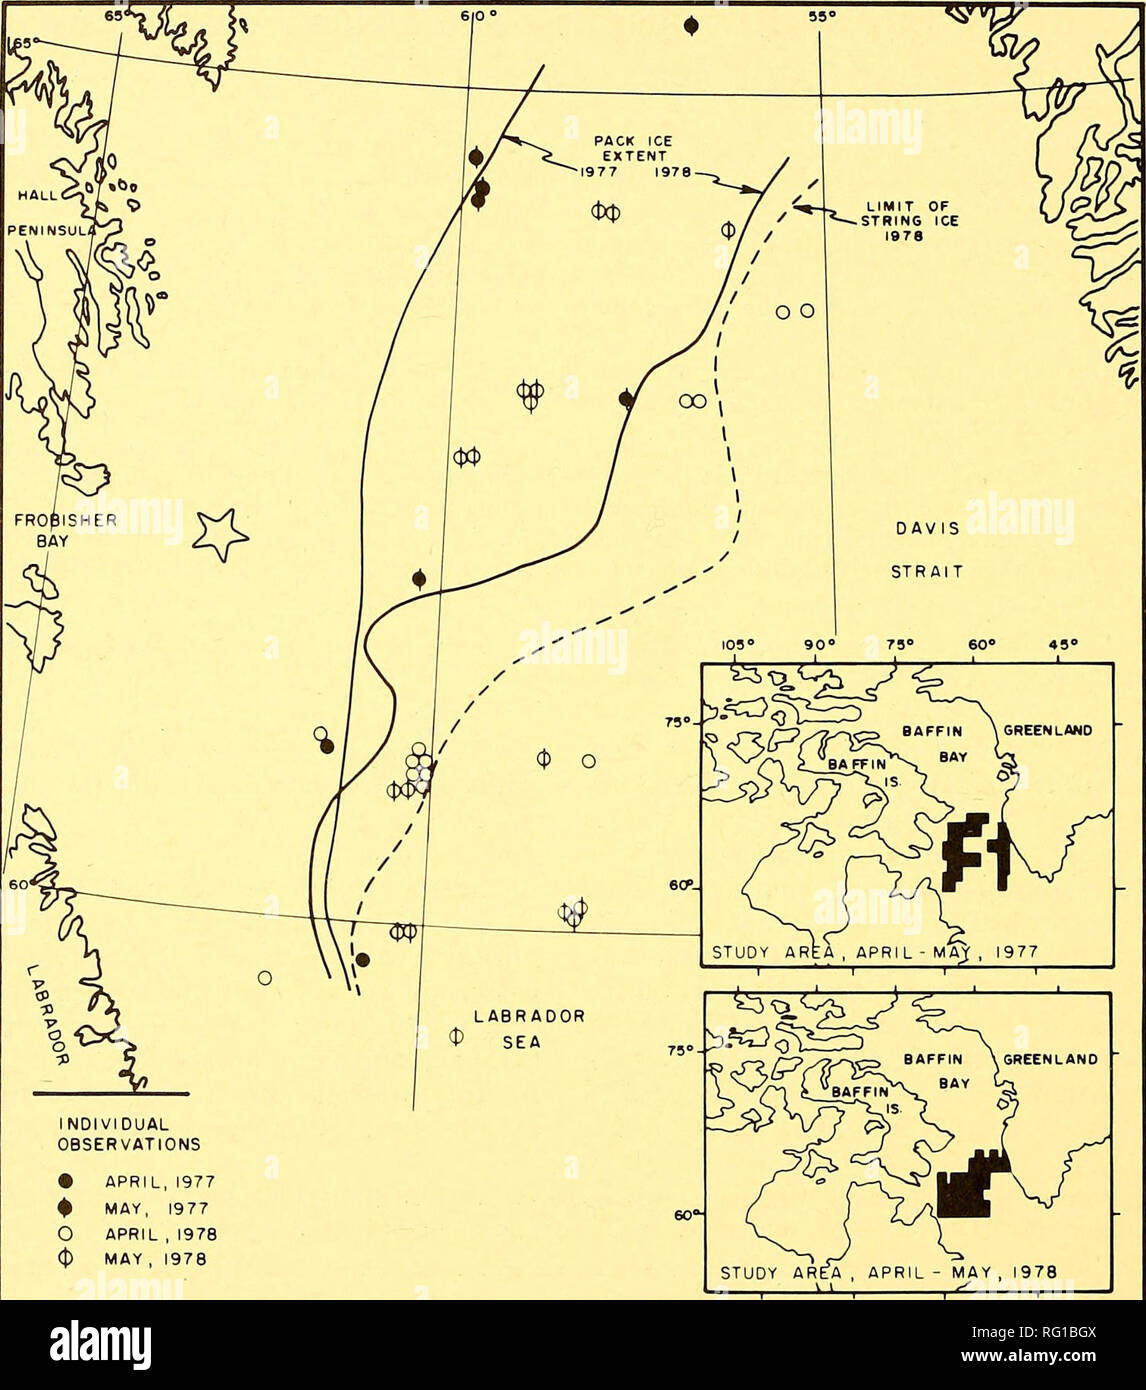 """. The Canadian field-naturalist. 186 The Canadian Field-Naturalist Vol. 94. INDIVIDUAL OBSERVATIONS • APRIL,1977 ^ MAY, 1977 O APRIL , 1978 MAY , 1978 90"""" 79° 60° 45° Figure 1. Observations of Snow Buntings in southern Davis Strait and jiorthern Labrador Sea during 295 PIROP watches in April and May 1977-1978. Large star shows 1979 drillship location. ing Davis Strait from Canada to West Greenland, judging by banding returns (Nethersole-Thompson 1966). Most observations were near the edge of extensive pack ice (Figure 1), where birds were often sighted resting on the ship or ice pans. The - Stock Image"""